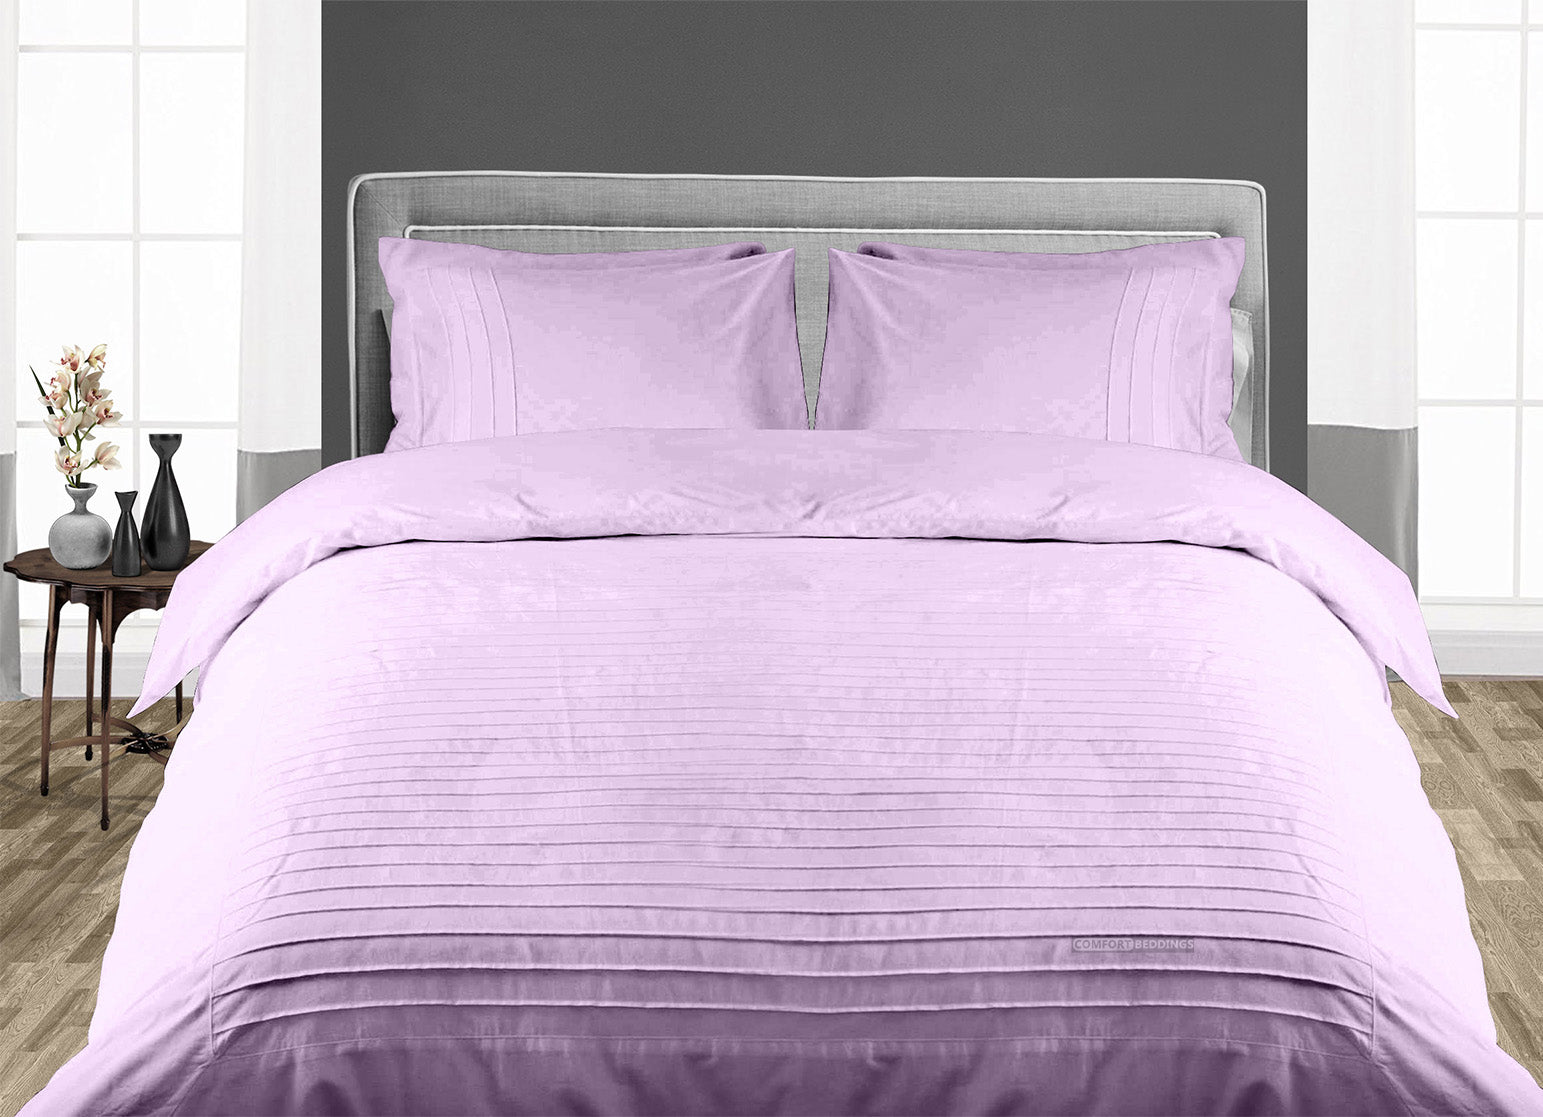 Luxury Lilac Moroccan Streak Duvet Cover And Pillowcases